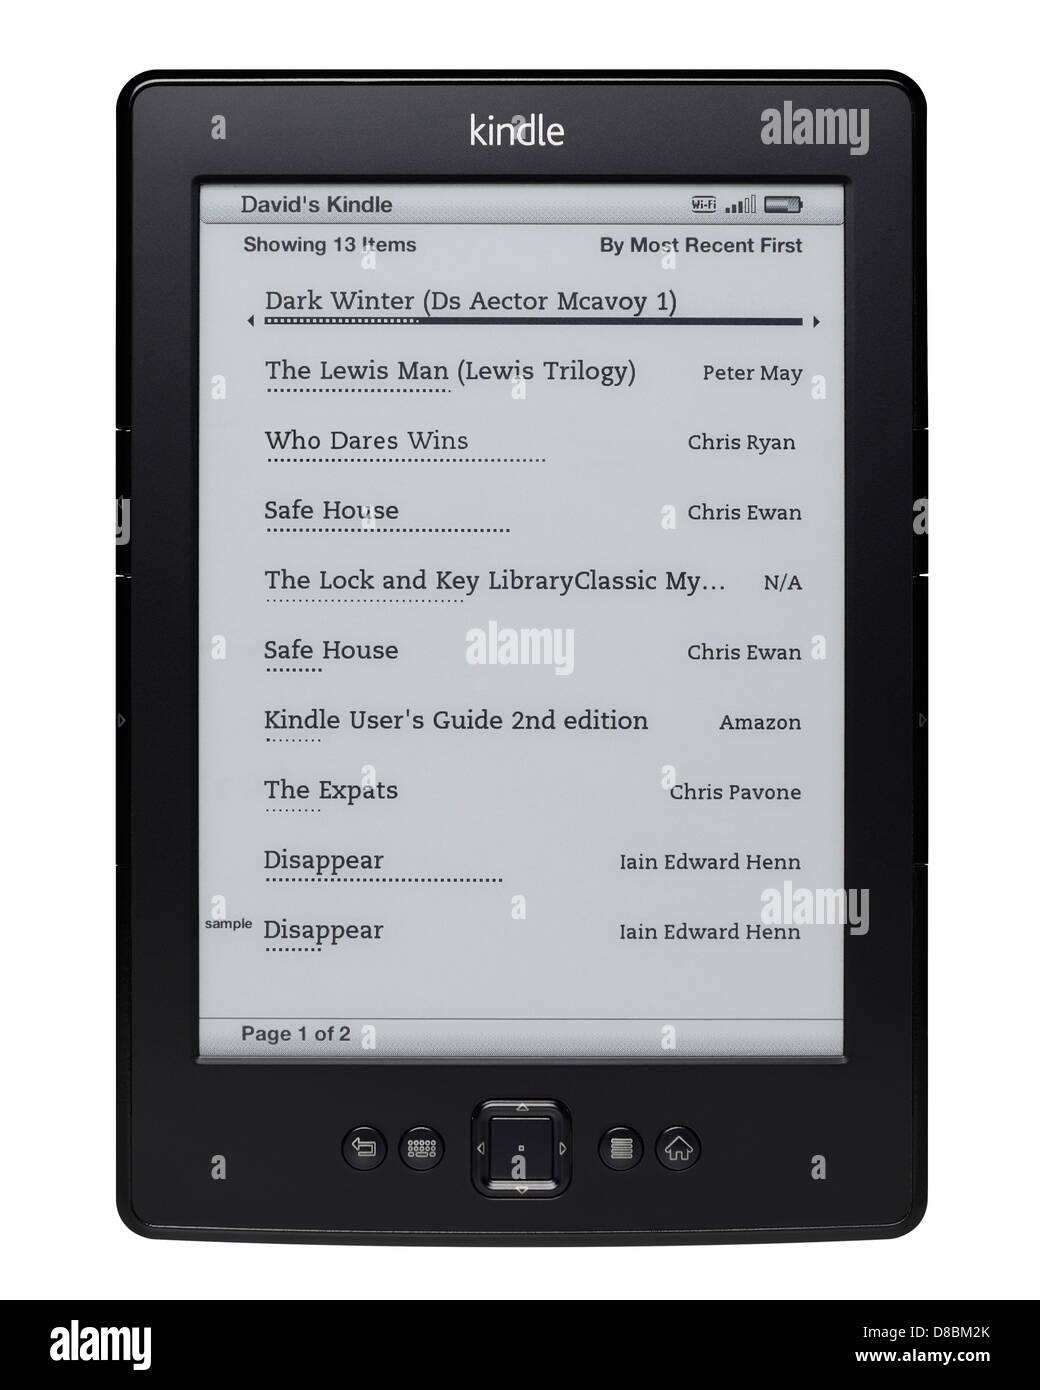 E Ink Kindle Lecture eReader Device Photo Stock